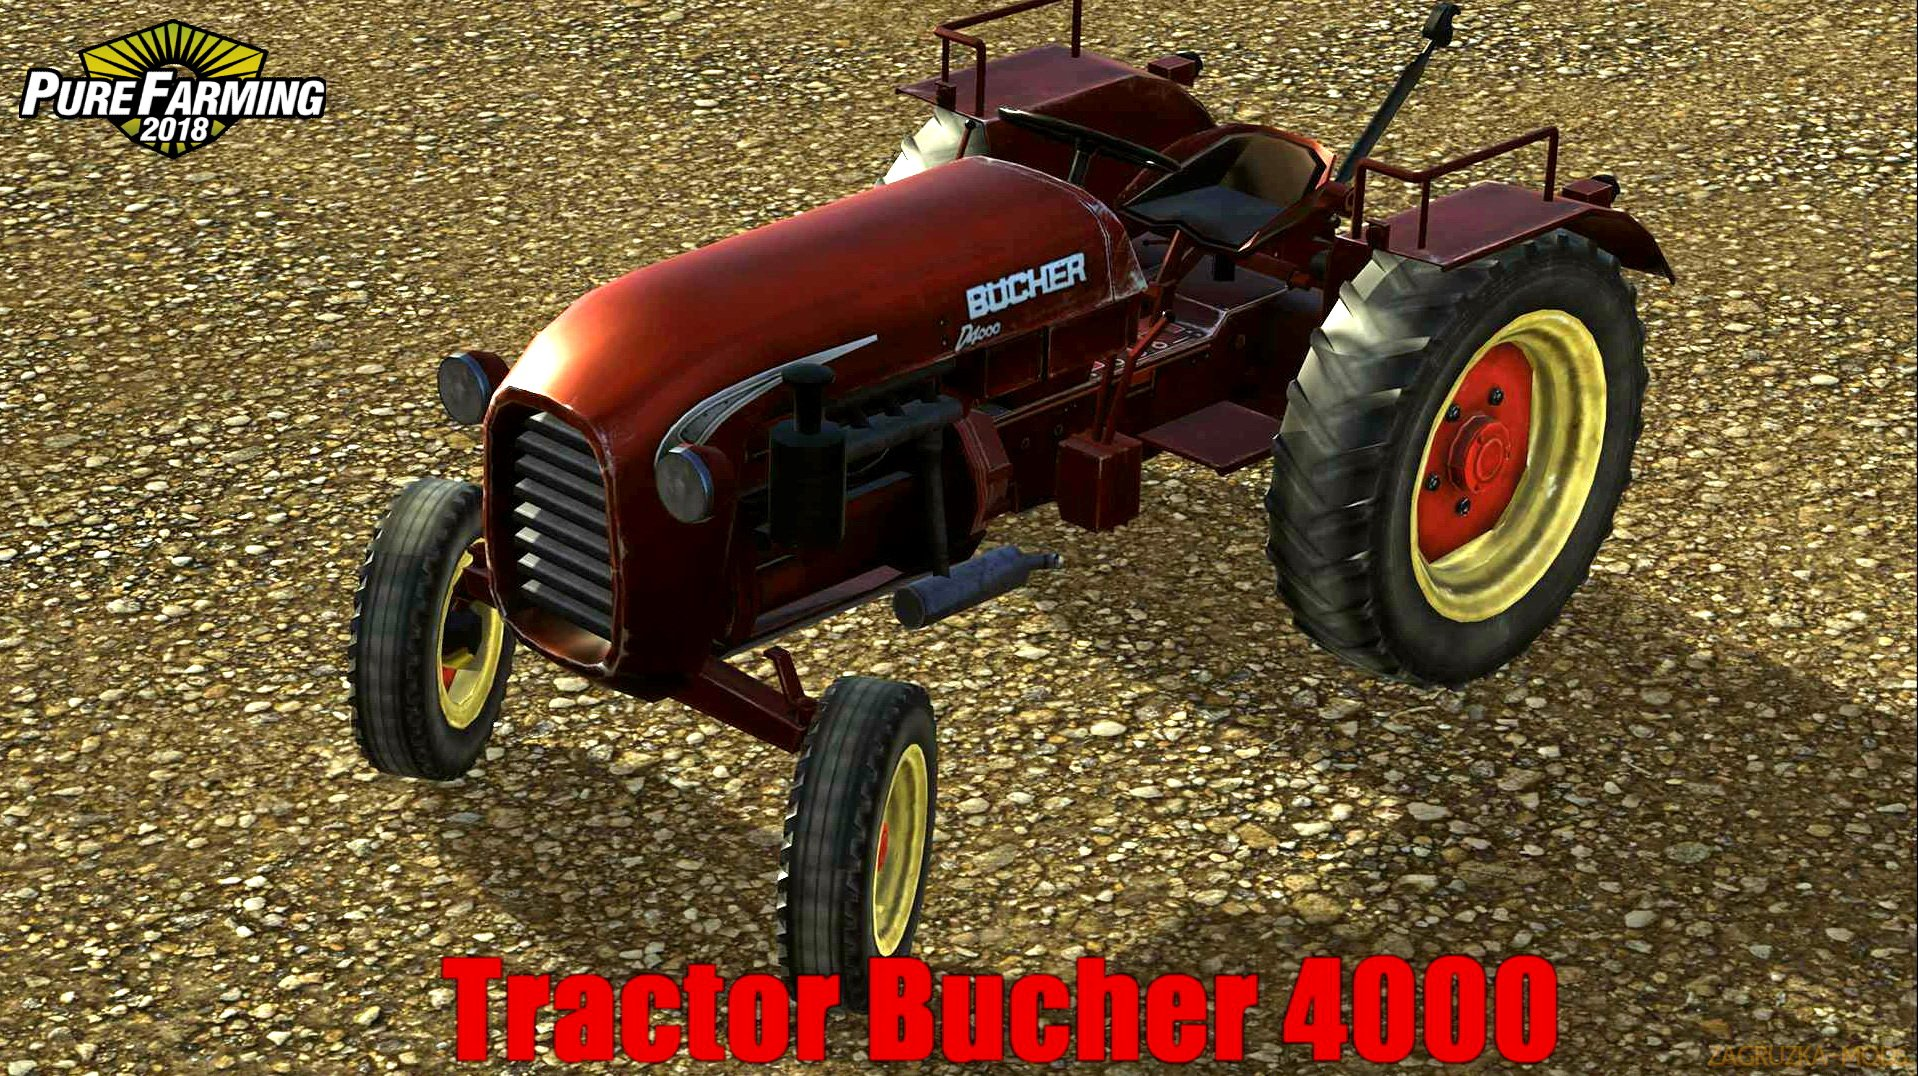 Tractor Bucher 4000 v1.0 for Pure Farming 2018